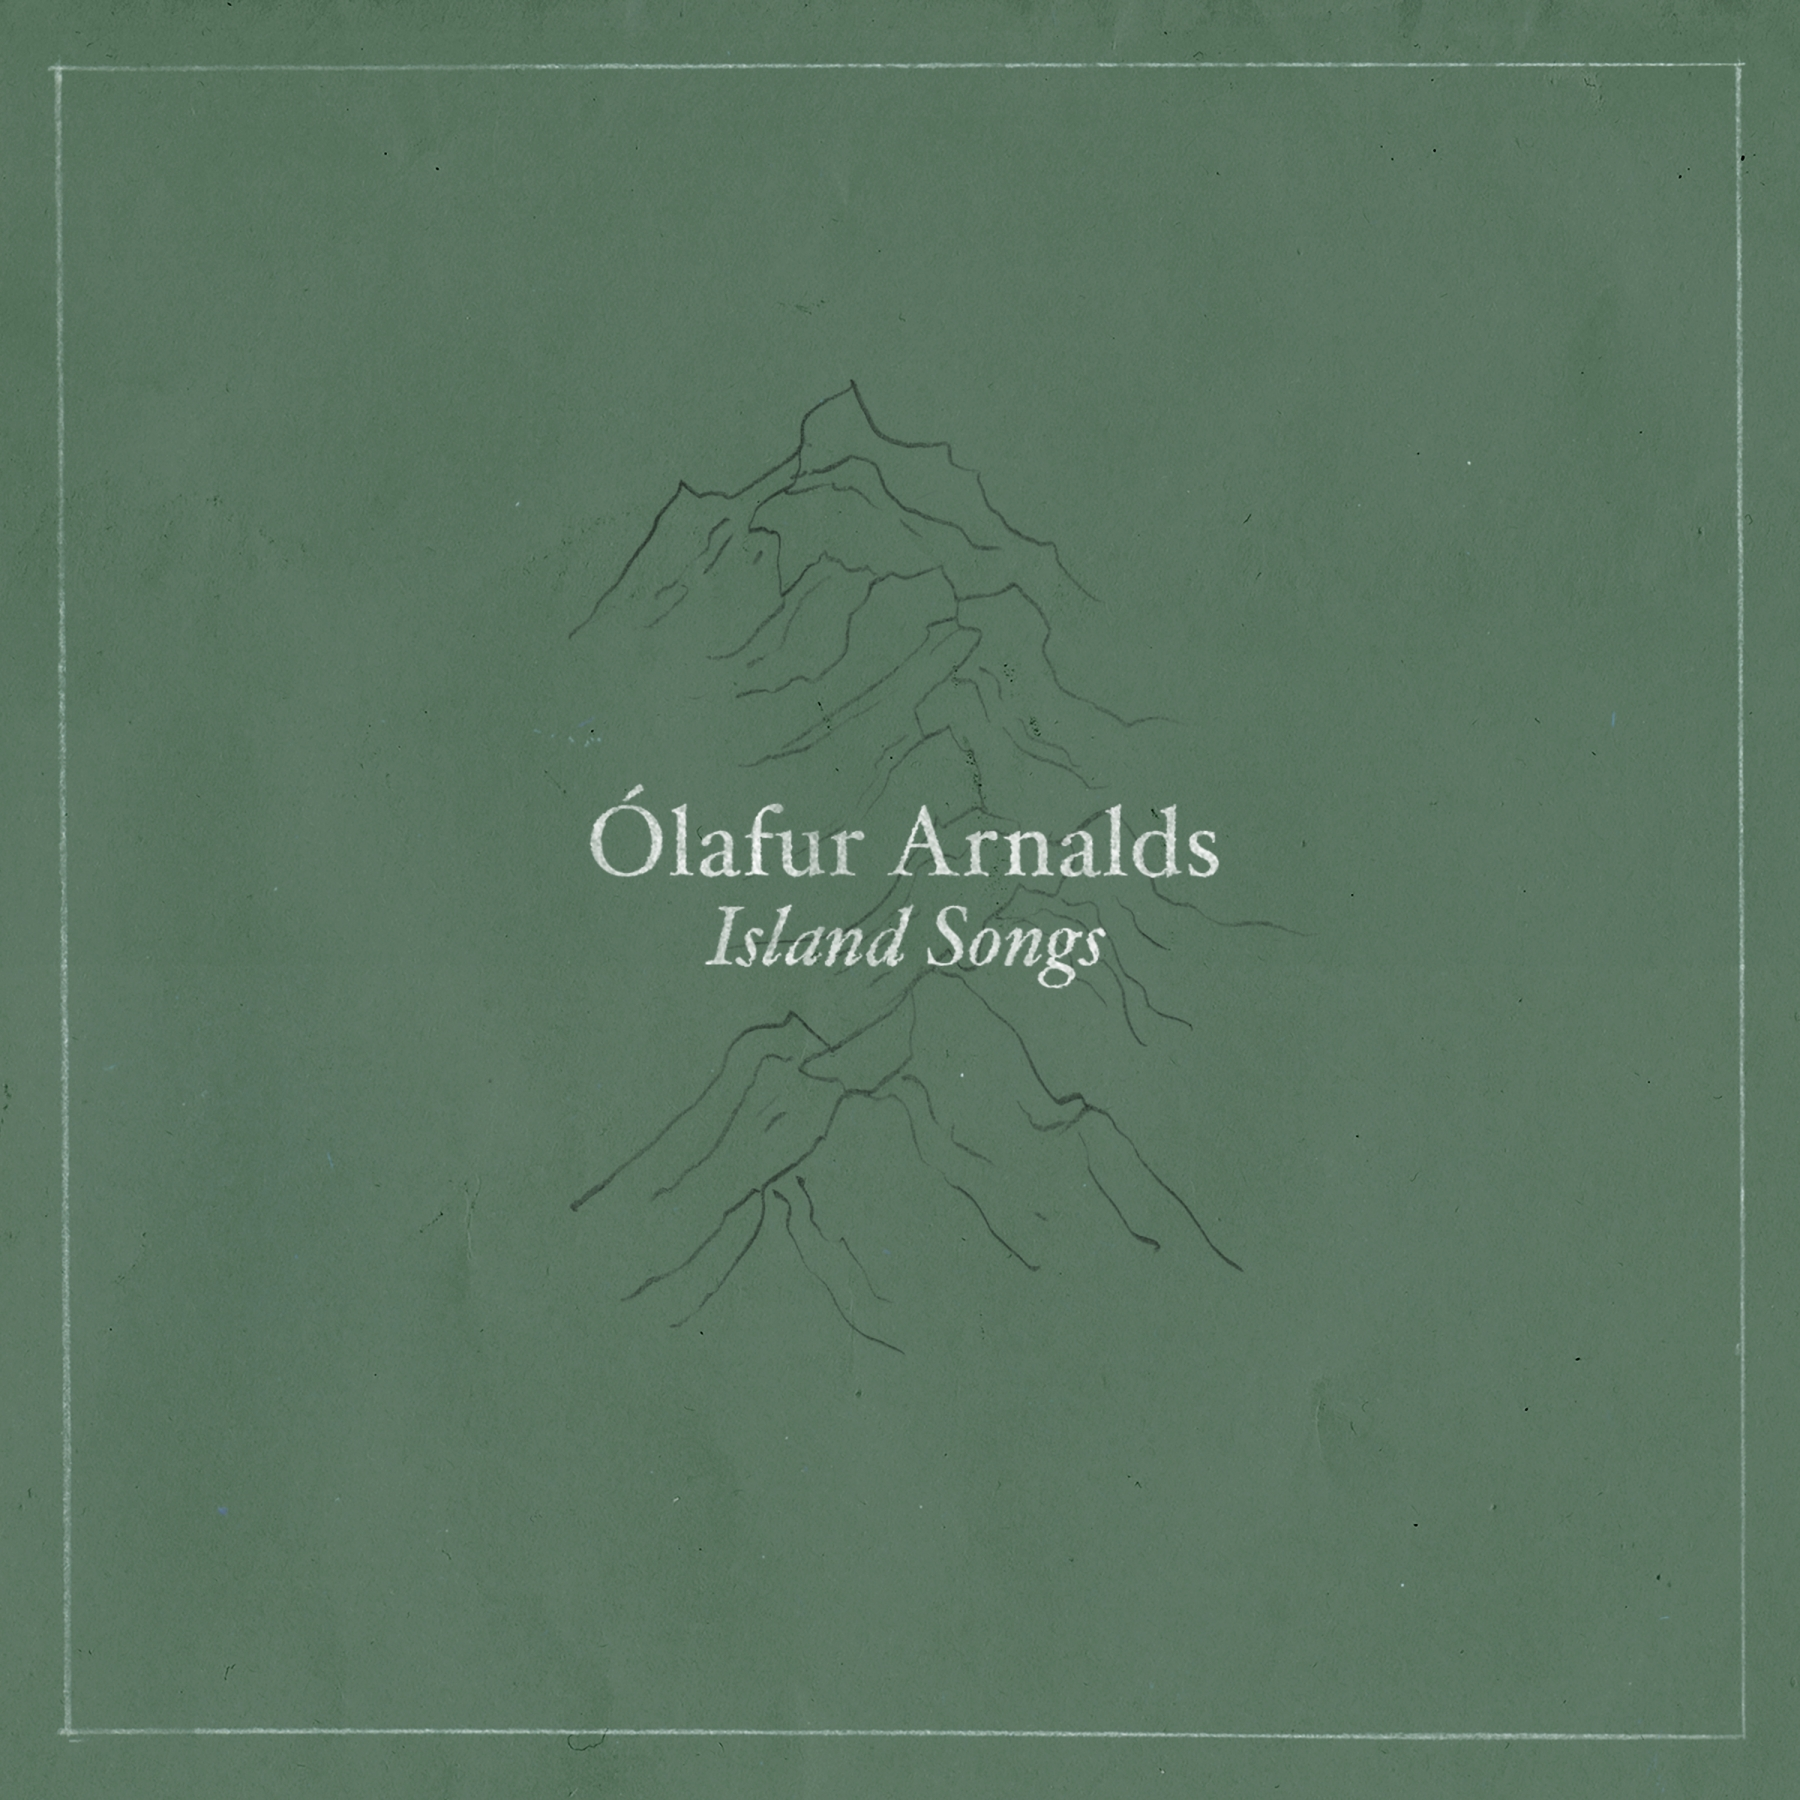 A sense of place: Ólafur Arnalds \u2013 Island Songs | Stationary Travels